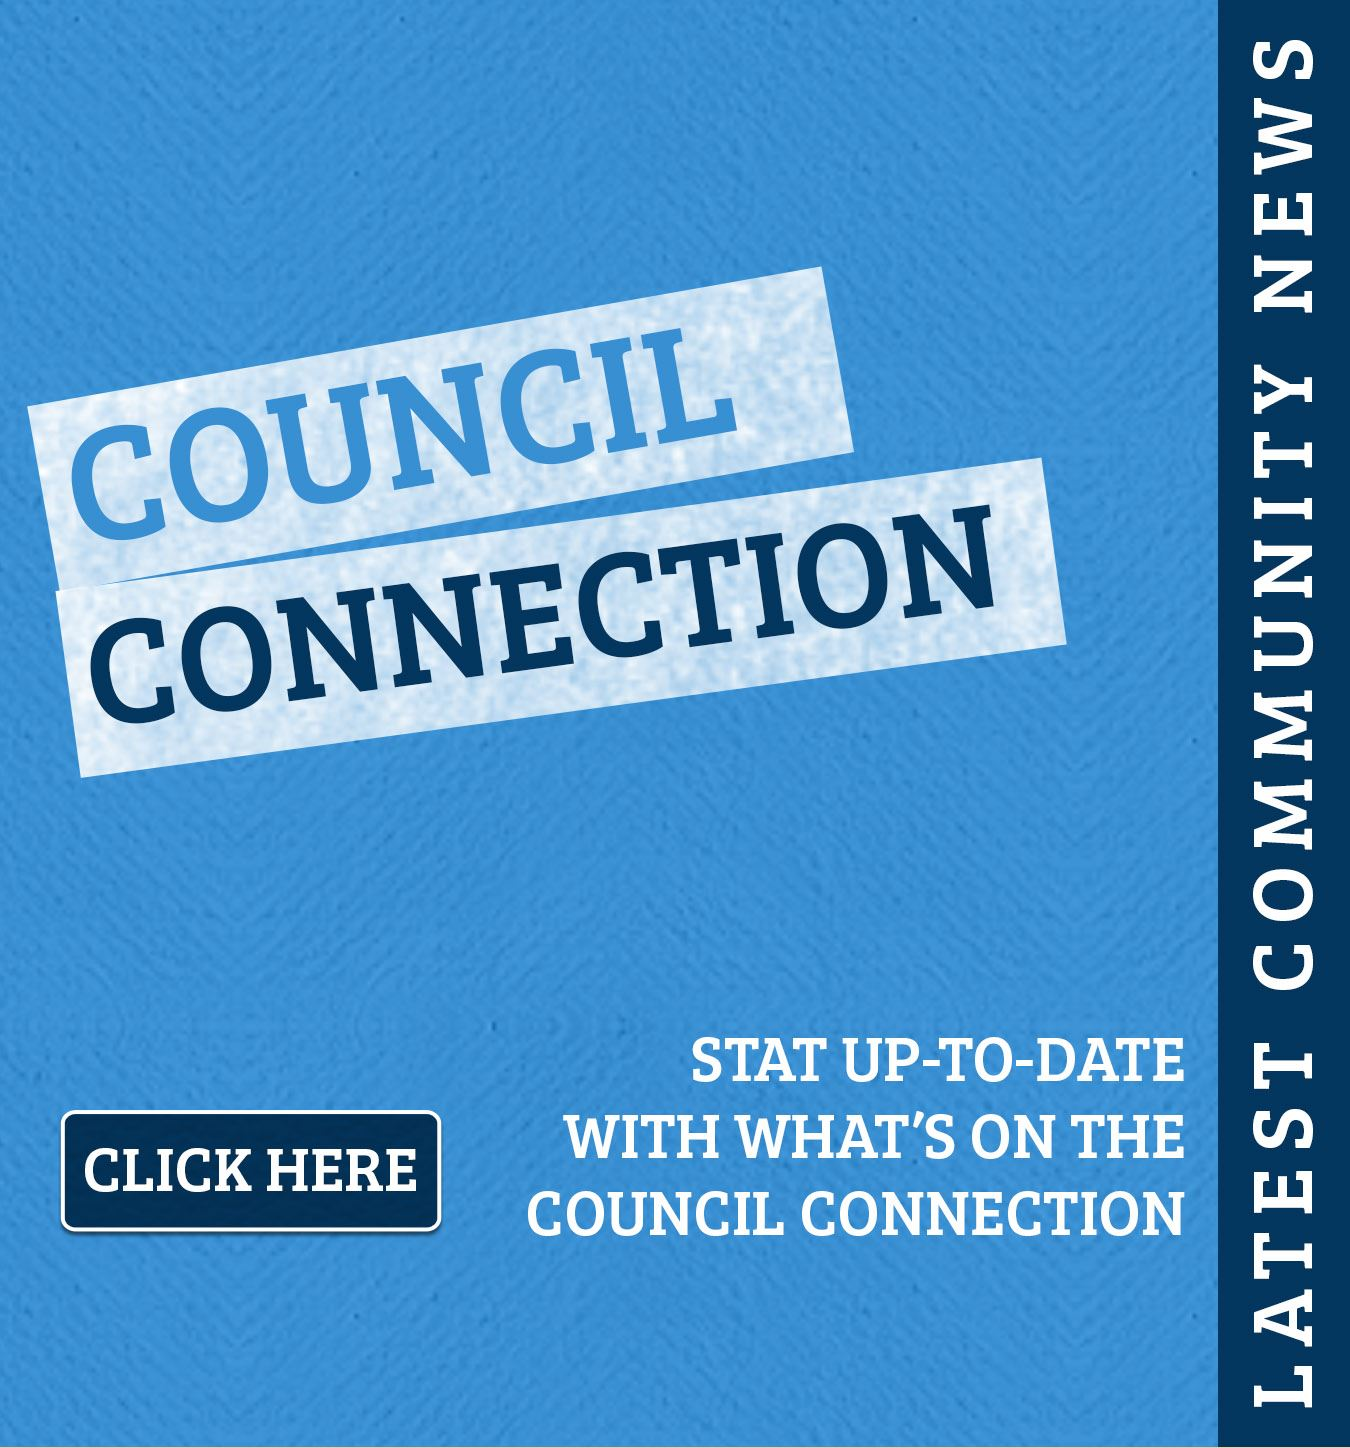 CouncilConnection